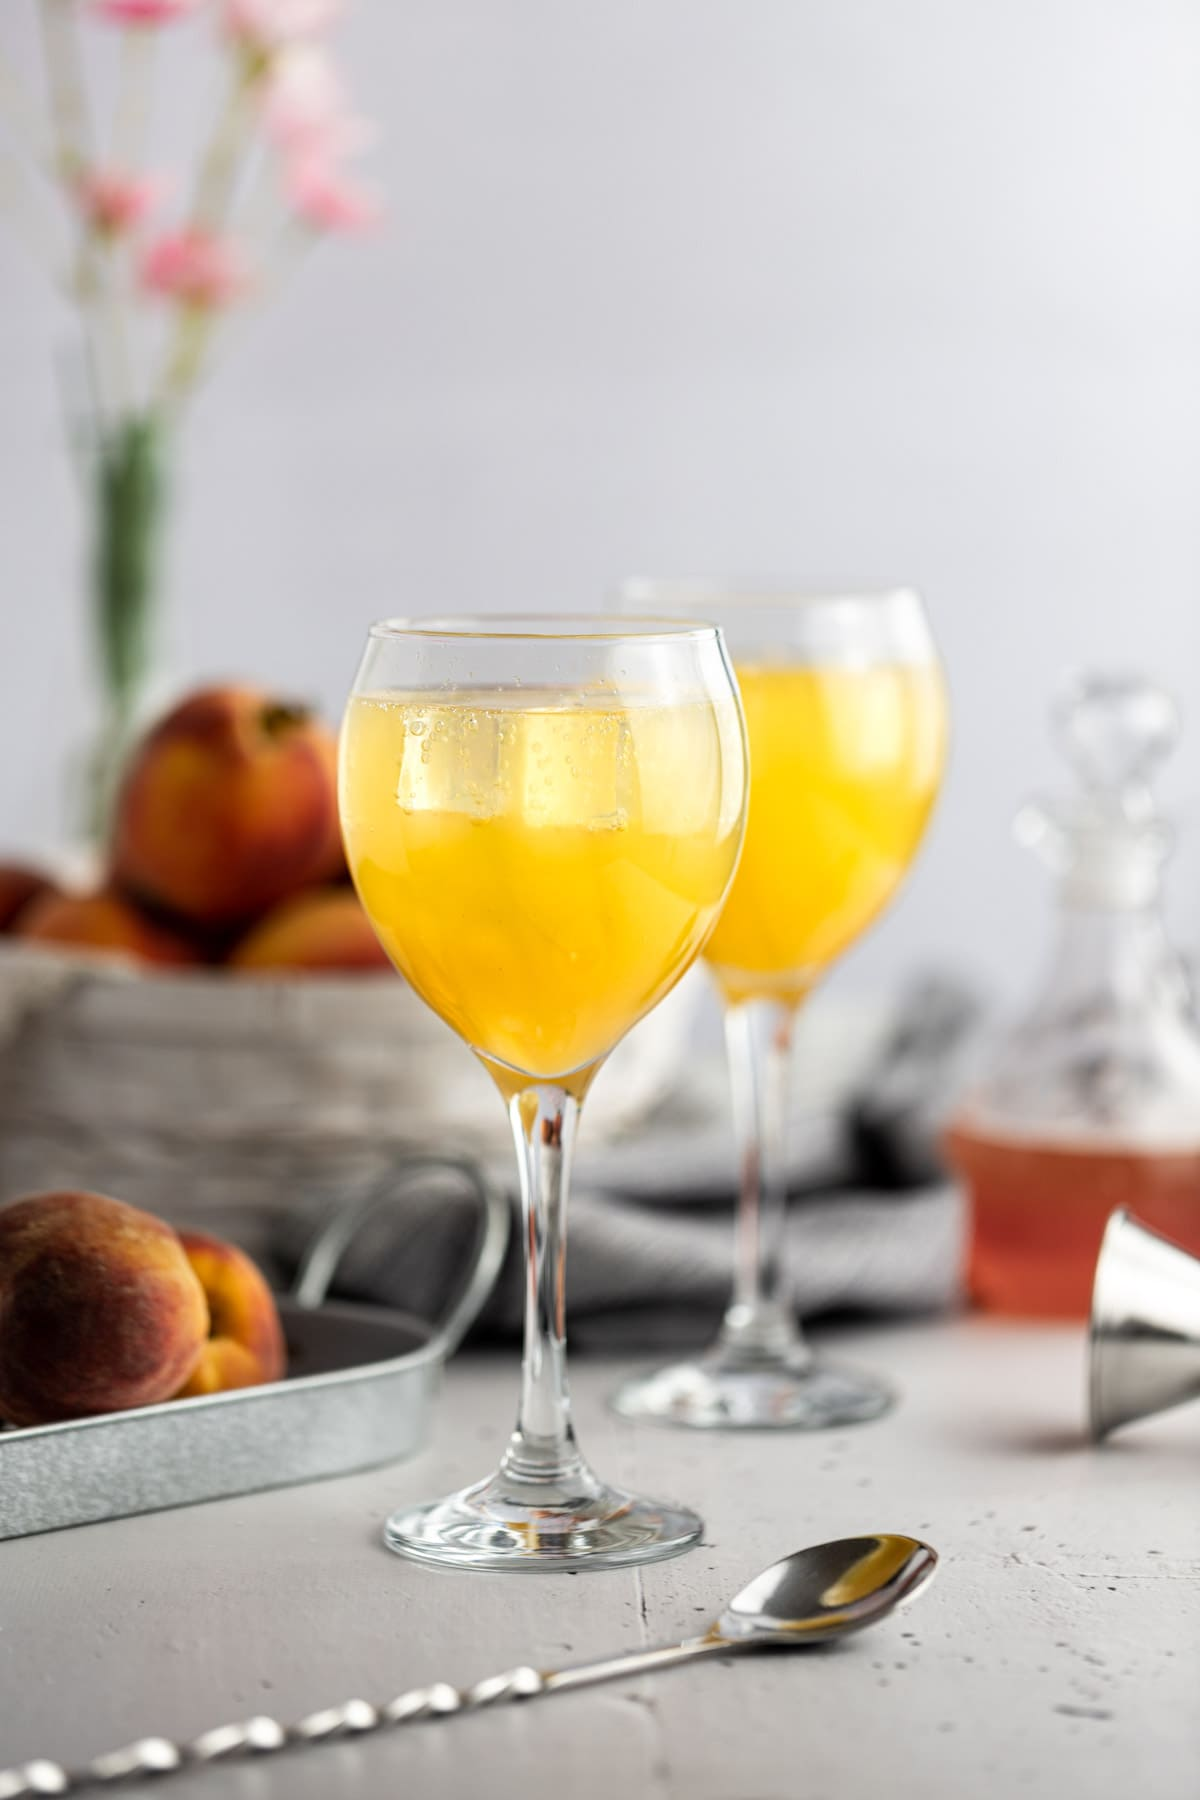 Two peach cocktails on a grey table, next to fresh peaches and a jar of peach syrup.